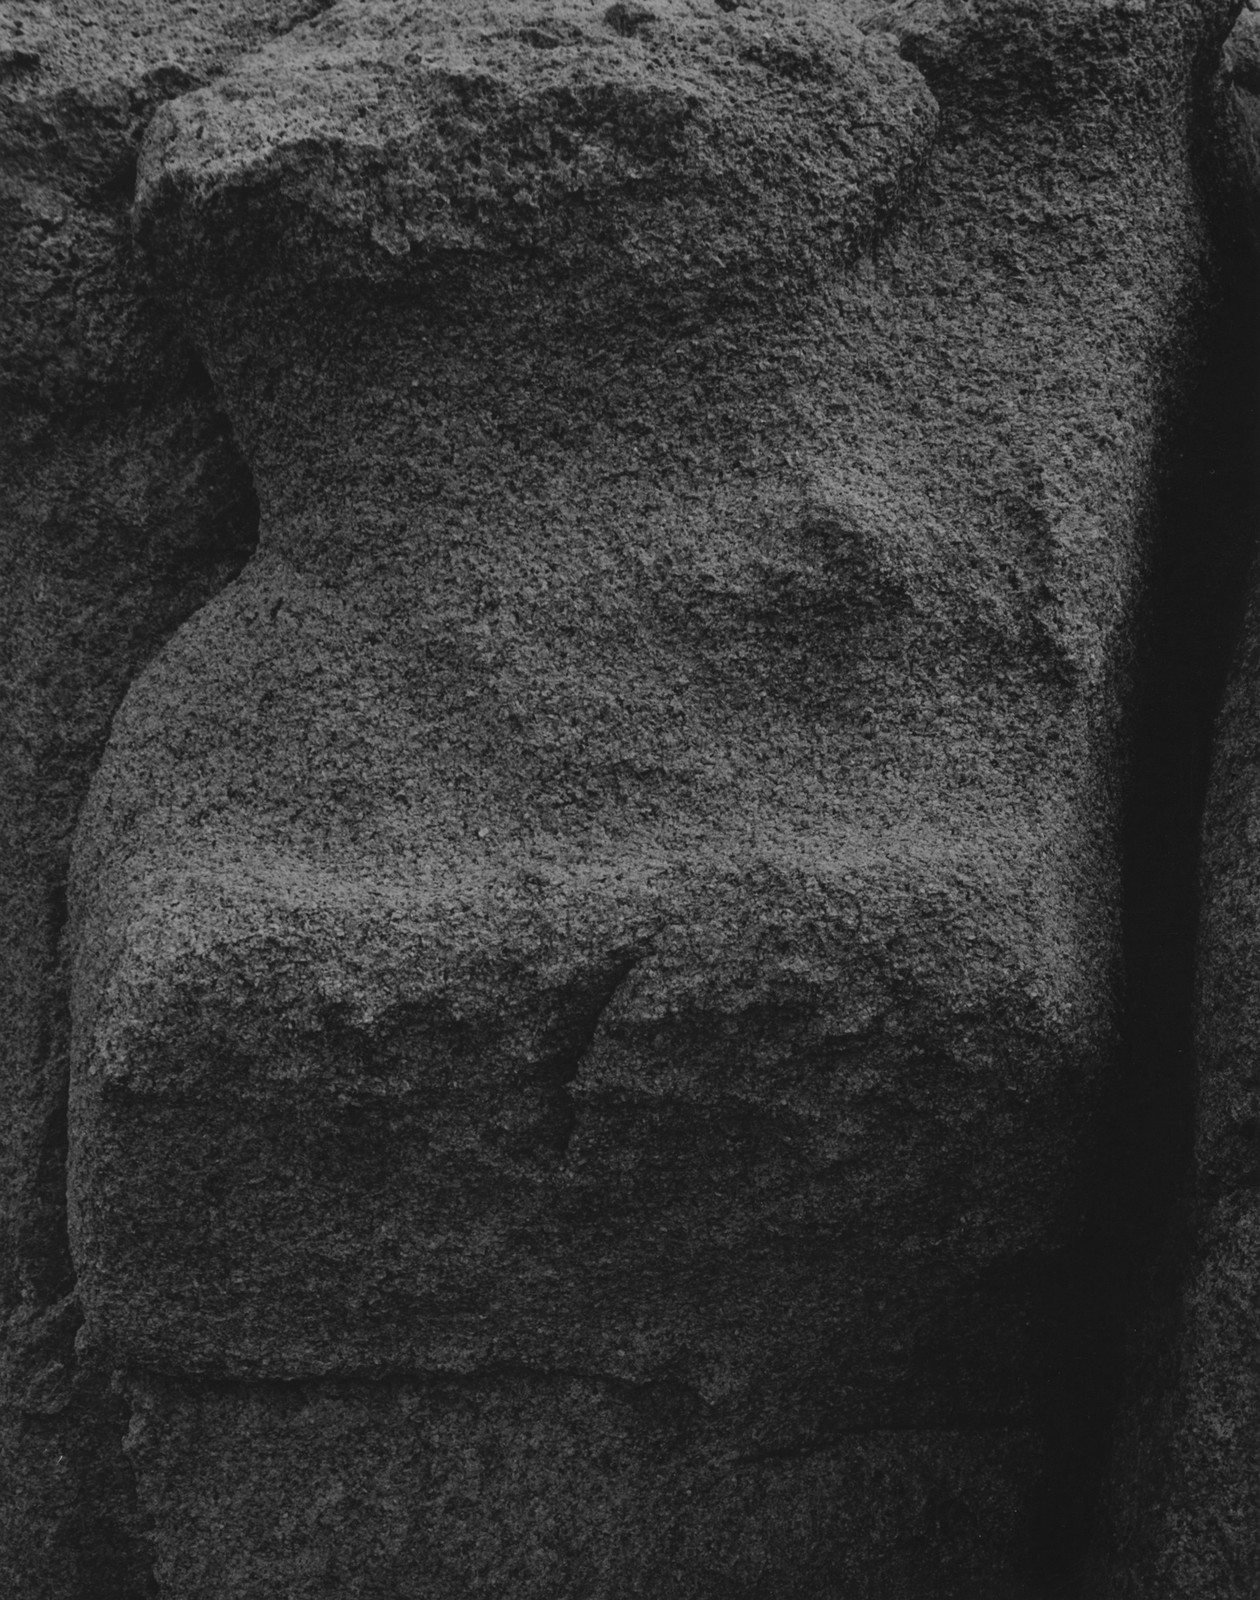 Gloucester Rocks 53A (1945) by Aaron Siskind